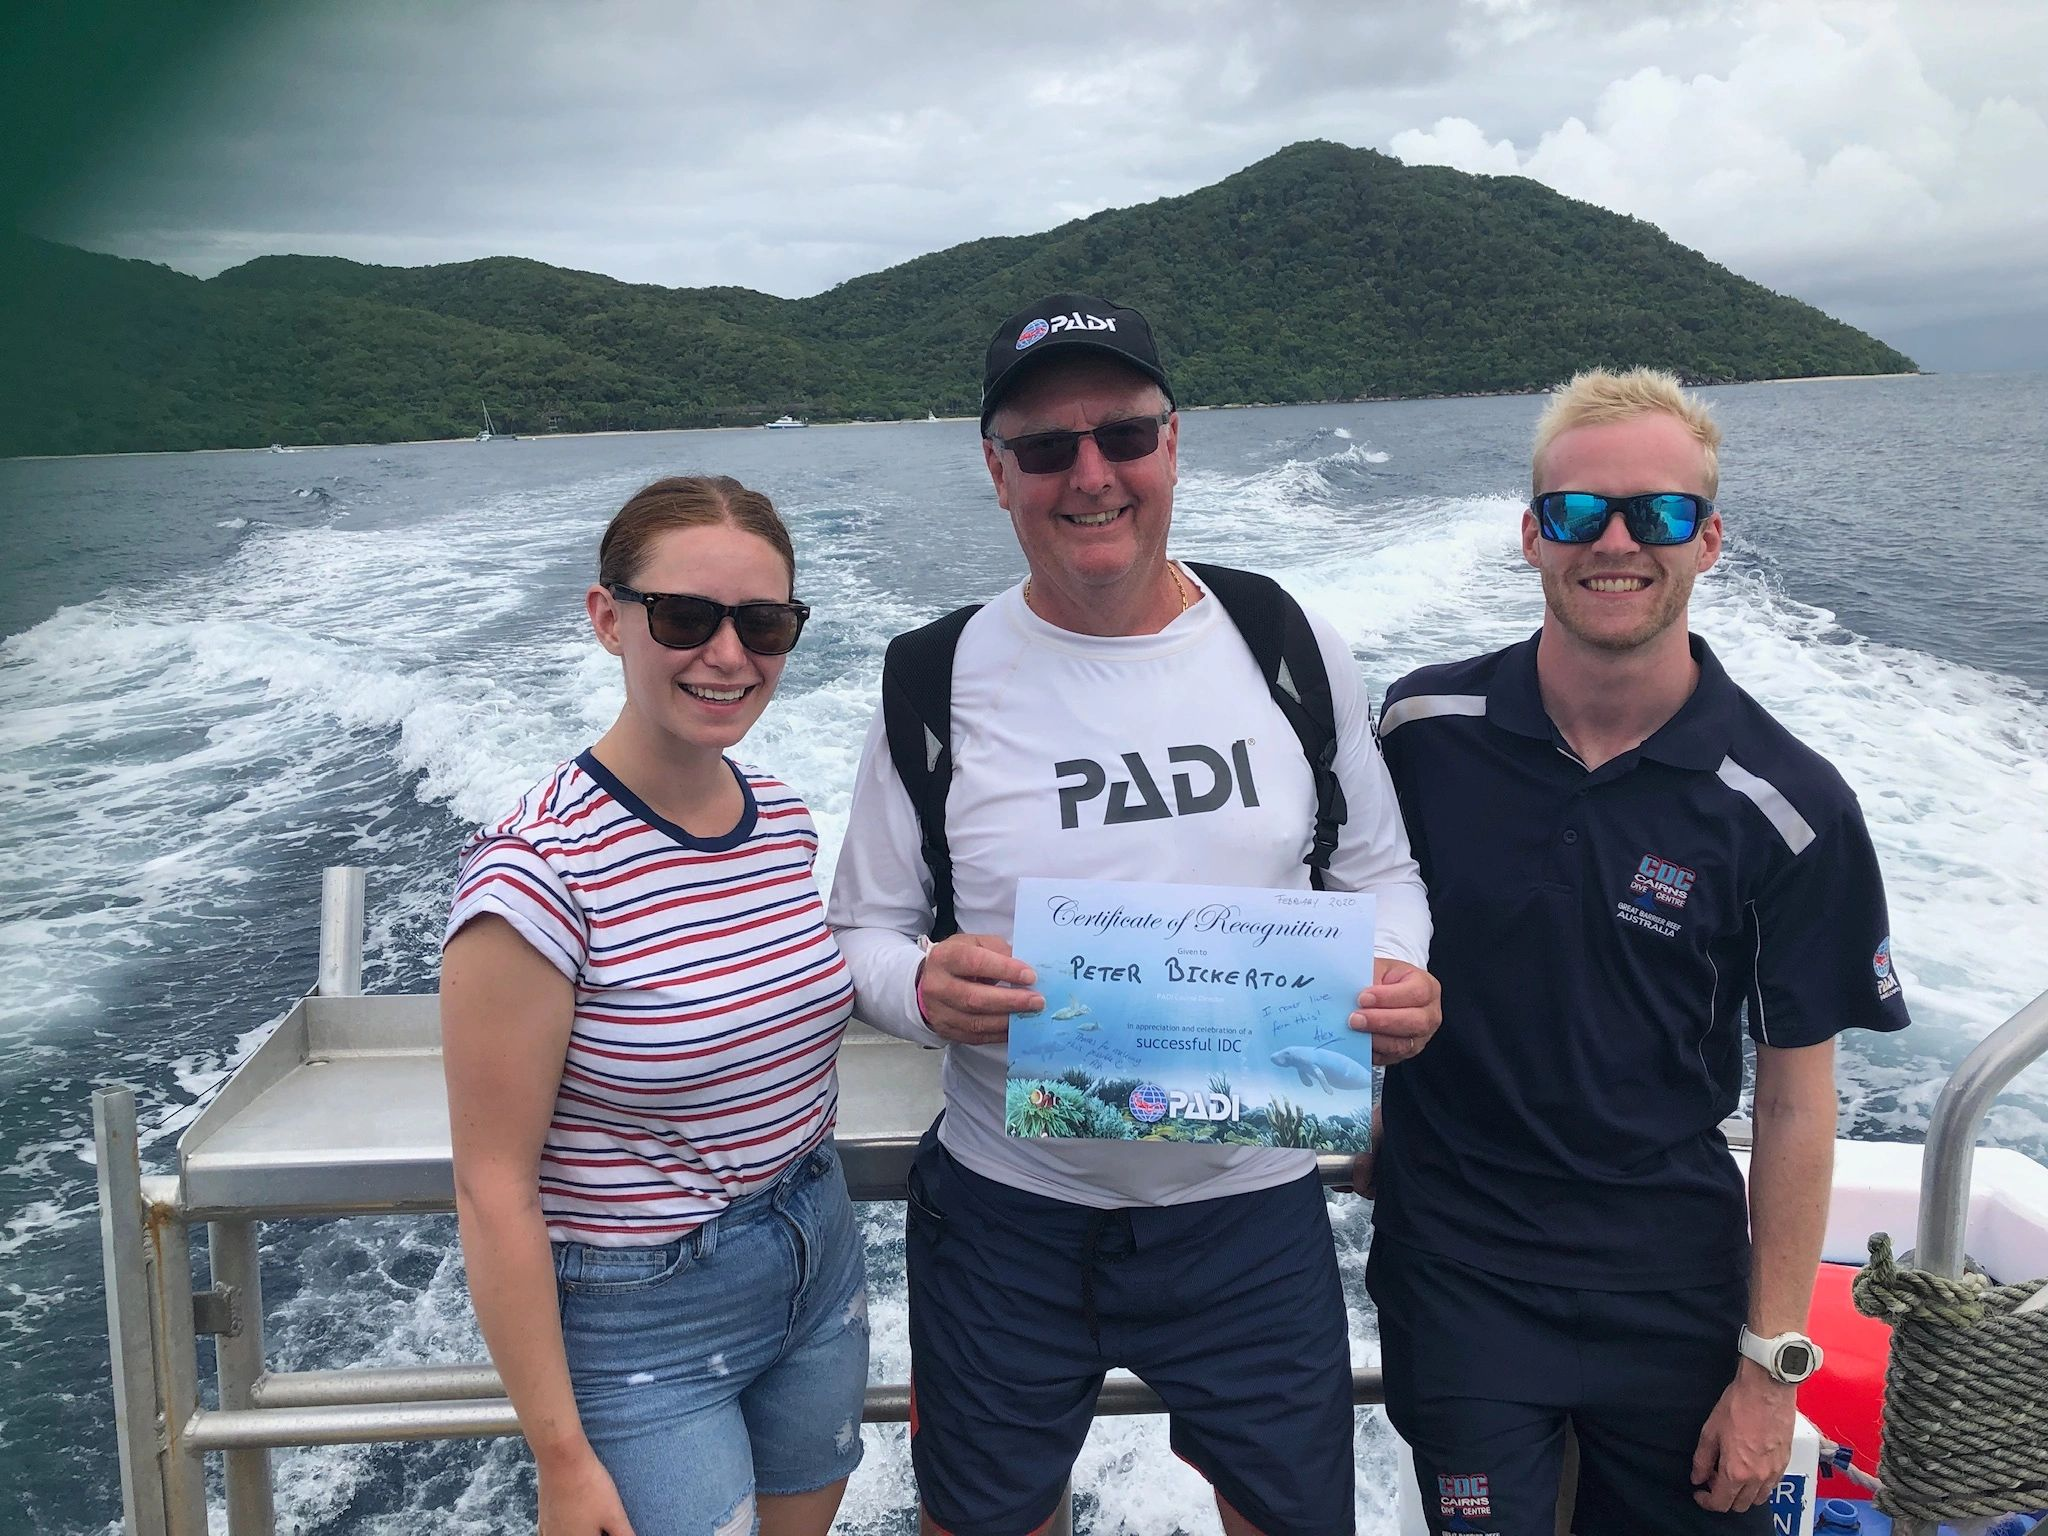 PADI instructor development course Instructor diving training